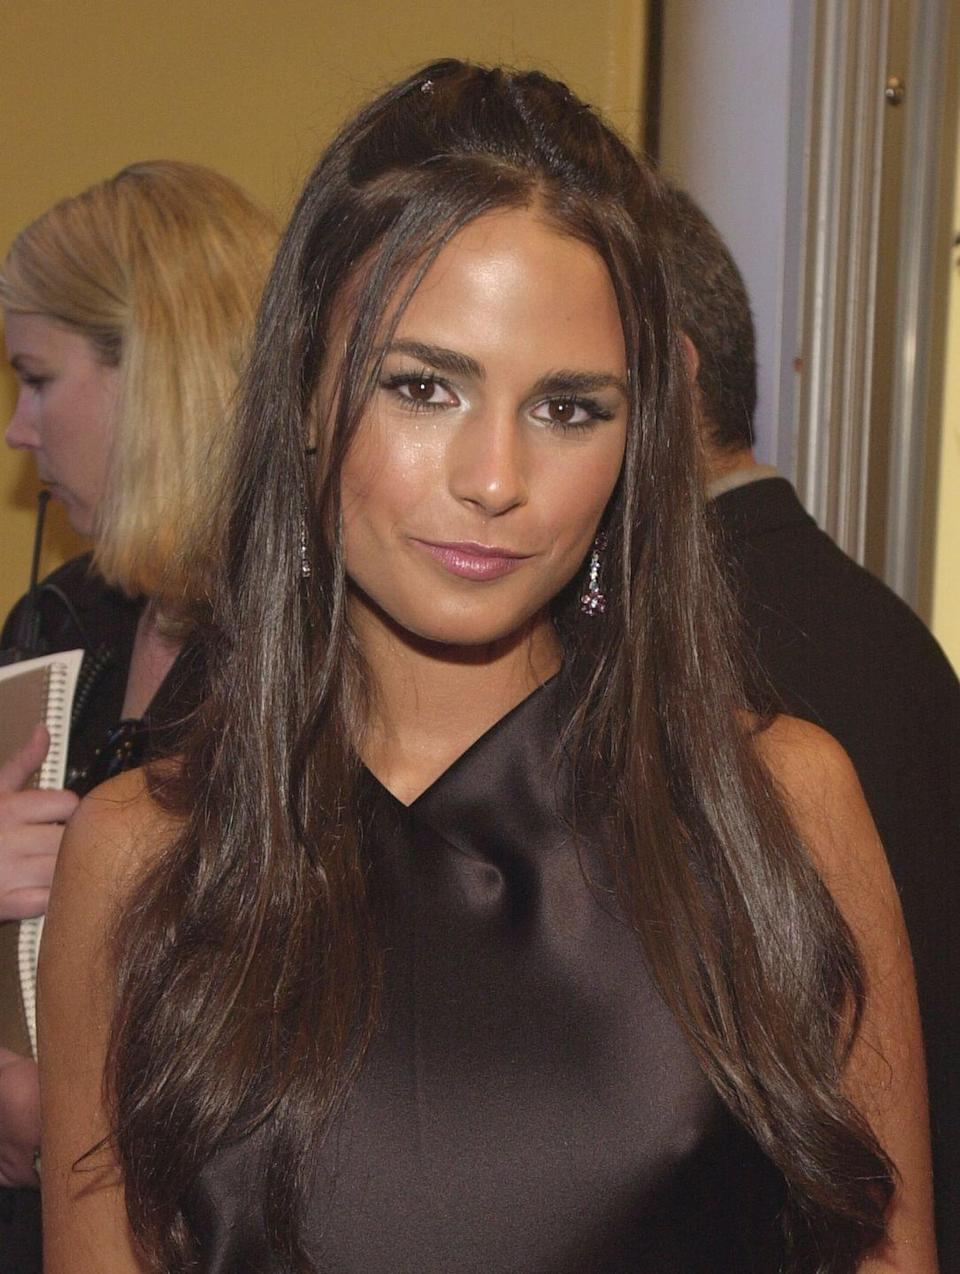 <p>Jordana Brewster has been a part of the <em>F&F </em>franchise since the very first film. She soon became a fan-favorite as Mia Toretto, the sister of Dominic Toretto and love interest of Brian O'Connor. </p>